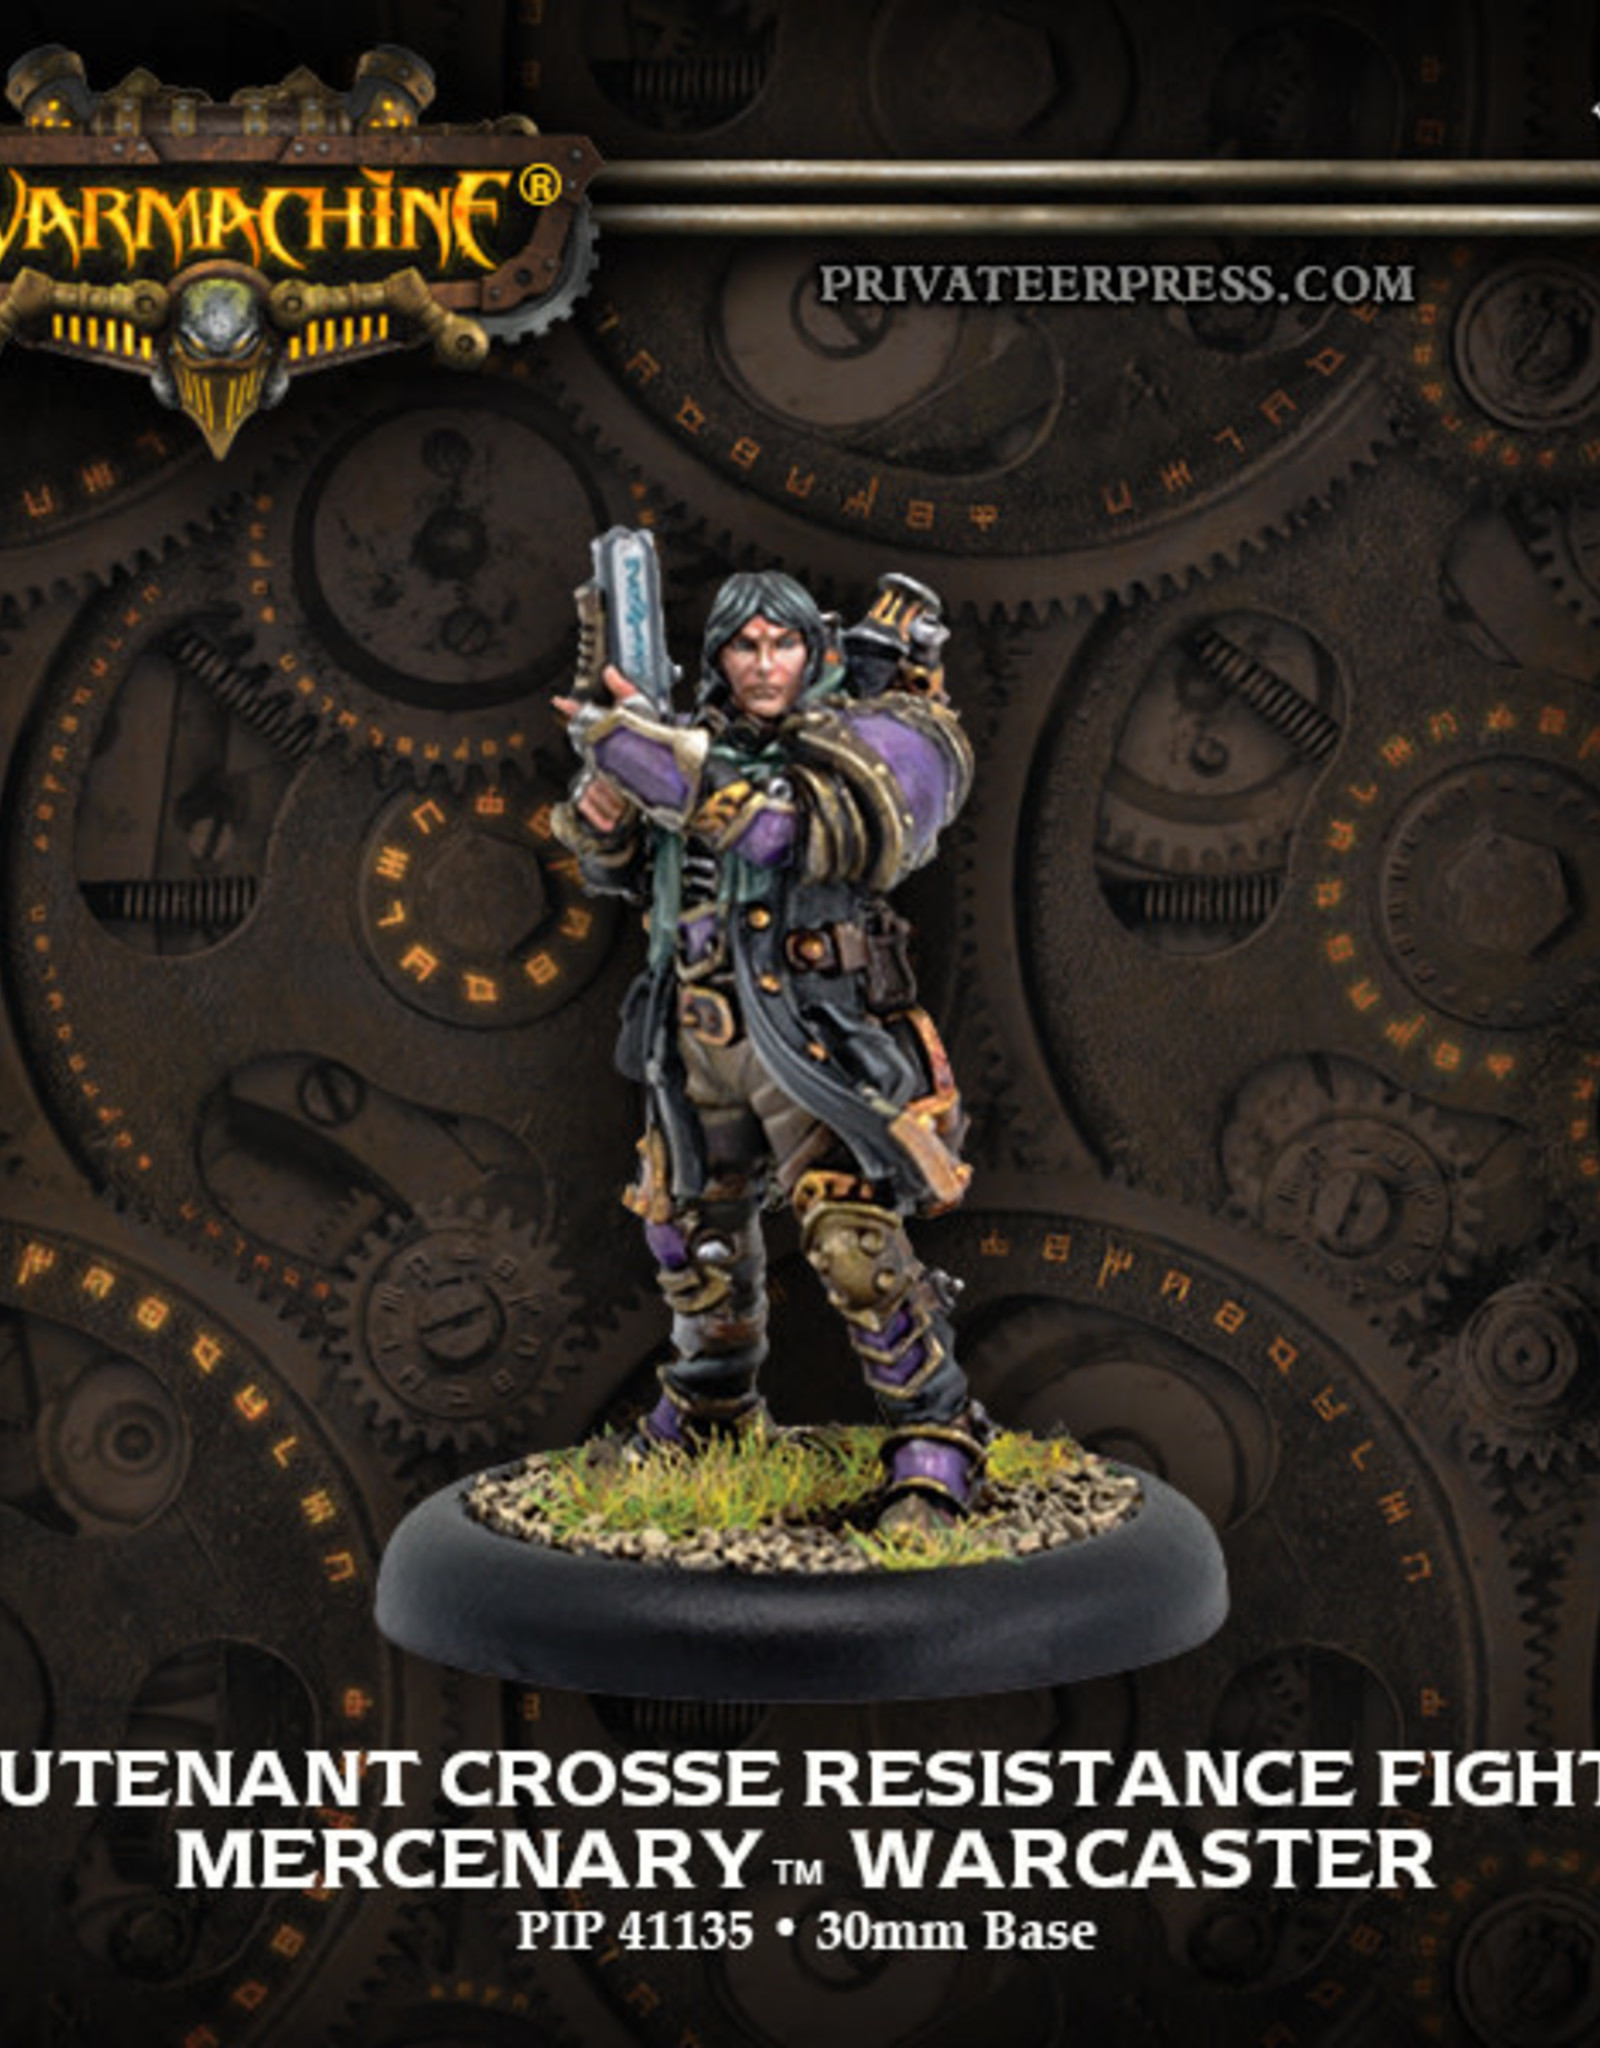 Warmachine Mercenaries - Lieutenant Crosse